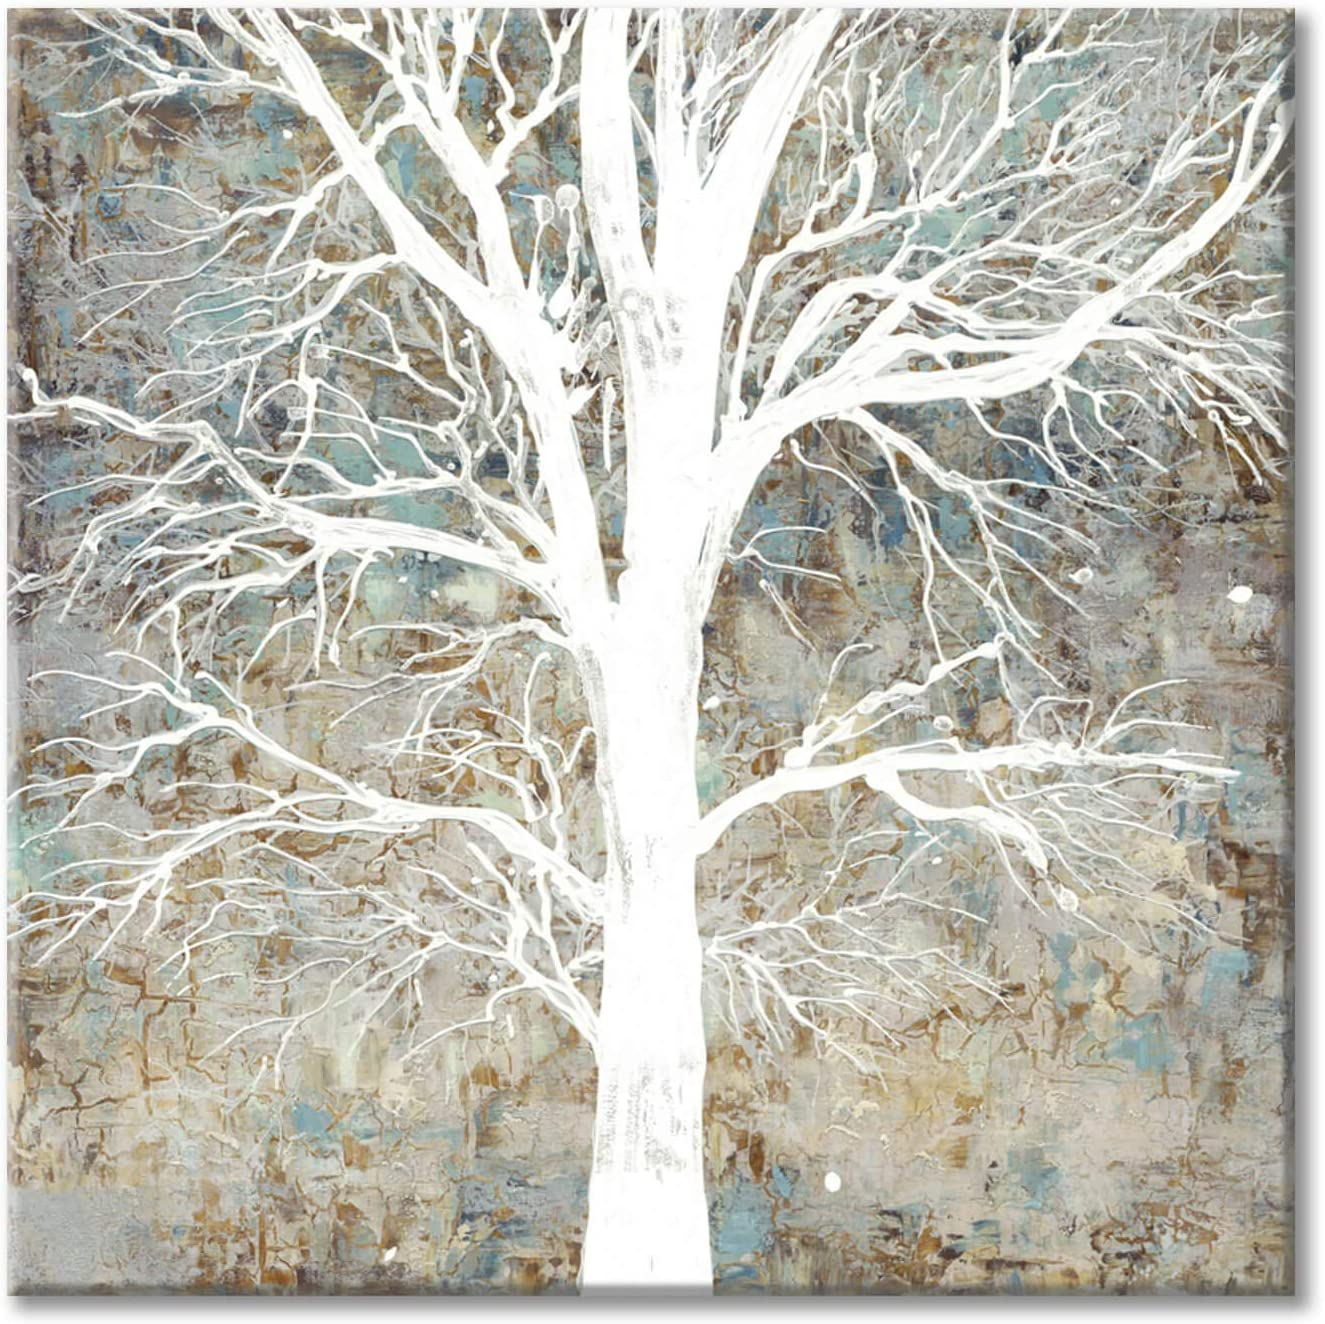 Abstract Tree Picture Wall Art: White Shadow Tree Artwork Texture Painting on Canvas for Bedroom (24'' x 24'' x 1 Panel)